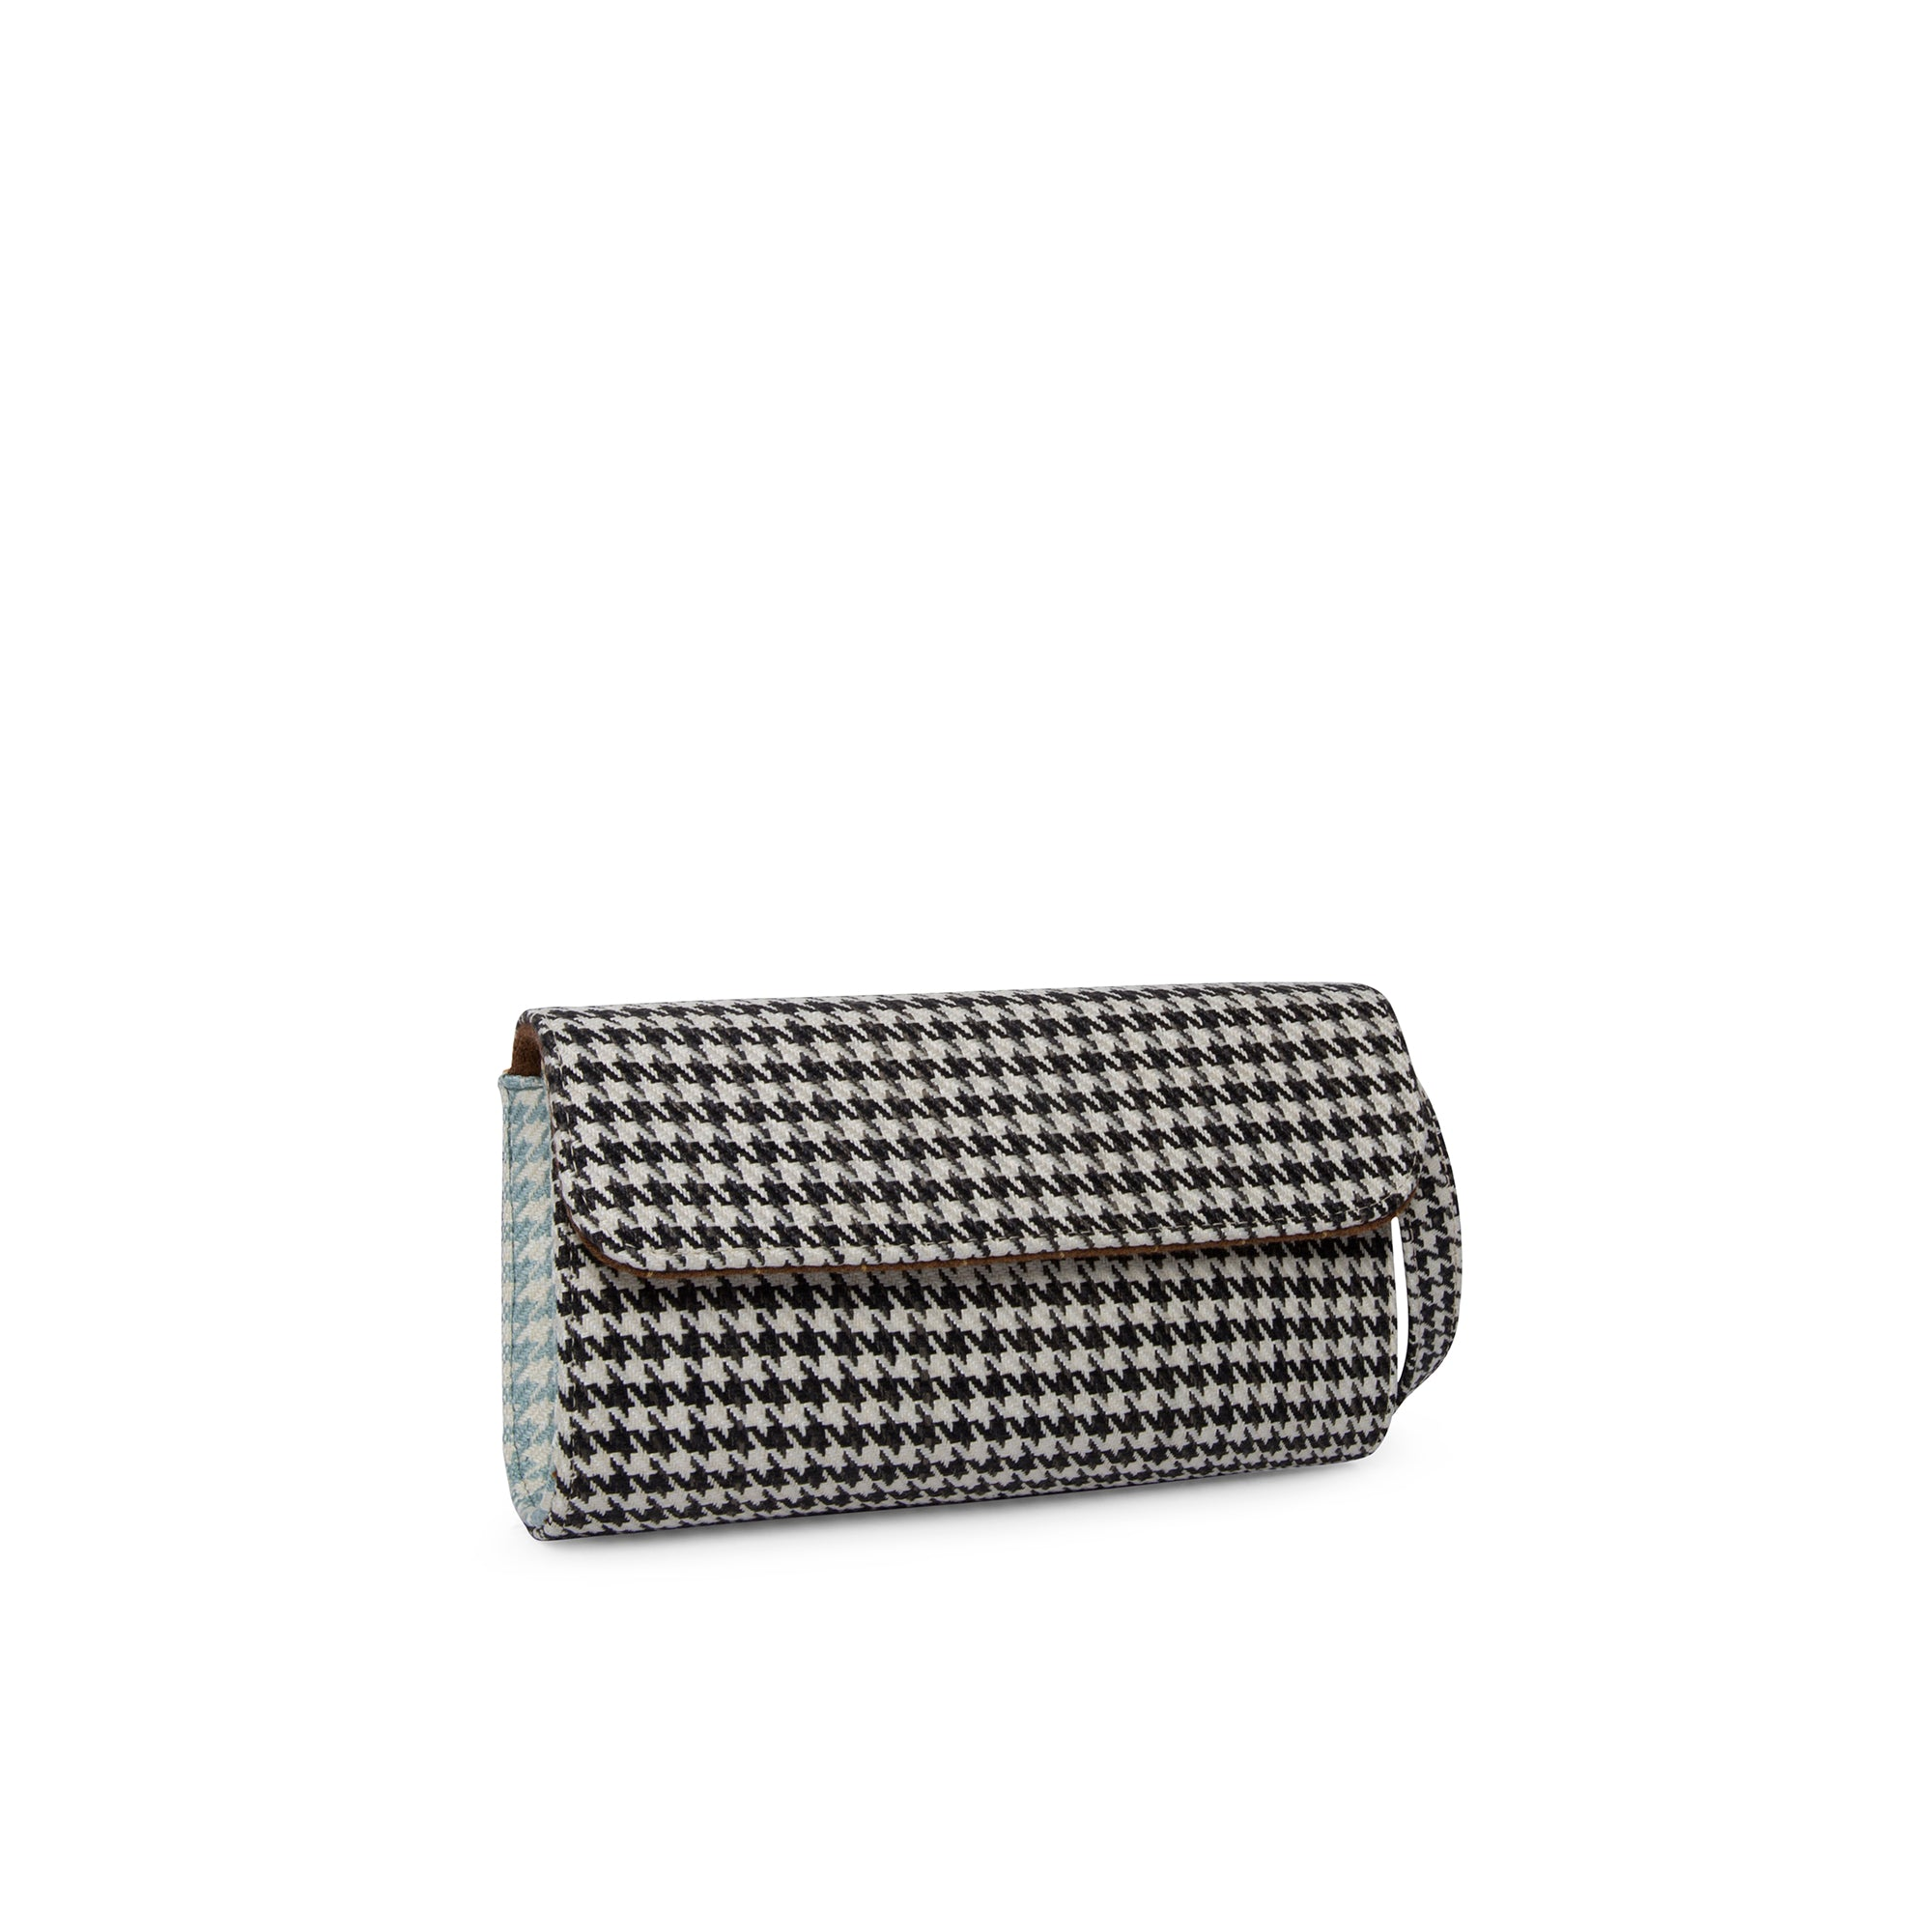 LIMITED EDITION Clutch L Pta. de Gallo negra